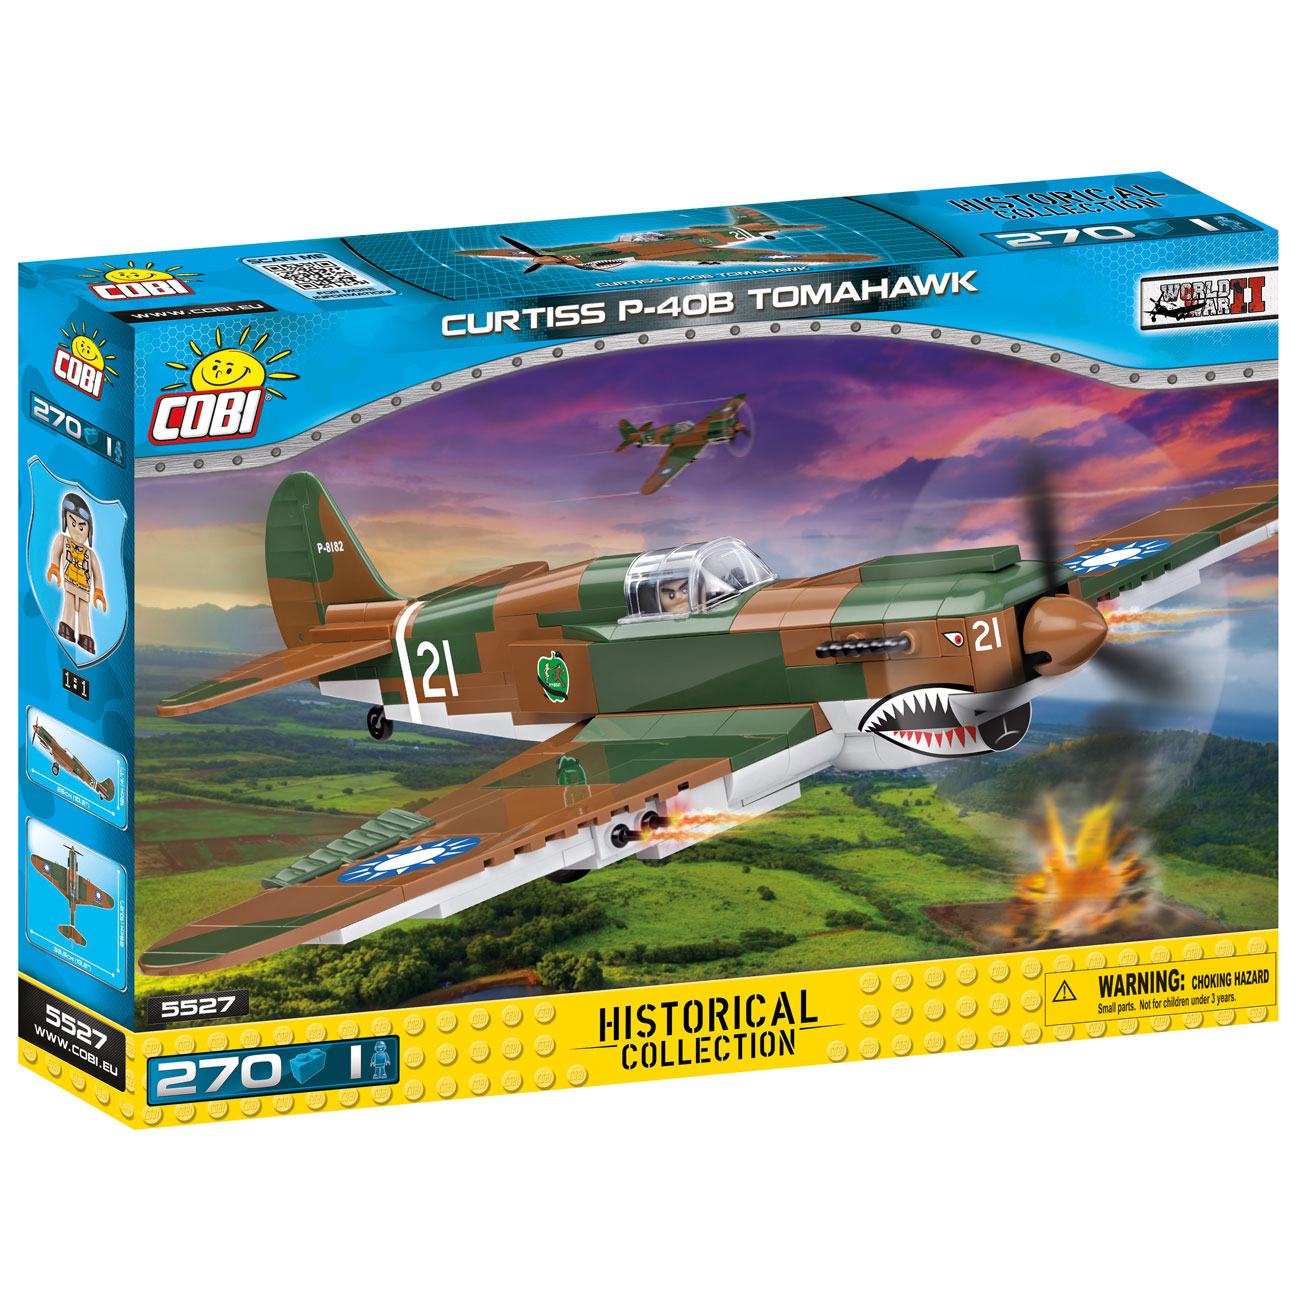 Cobi Historical Collection Bausatz Flugzeug P-40B Tomahawk 270 Teile 5527 1